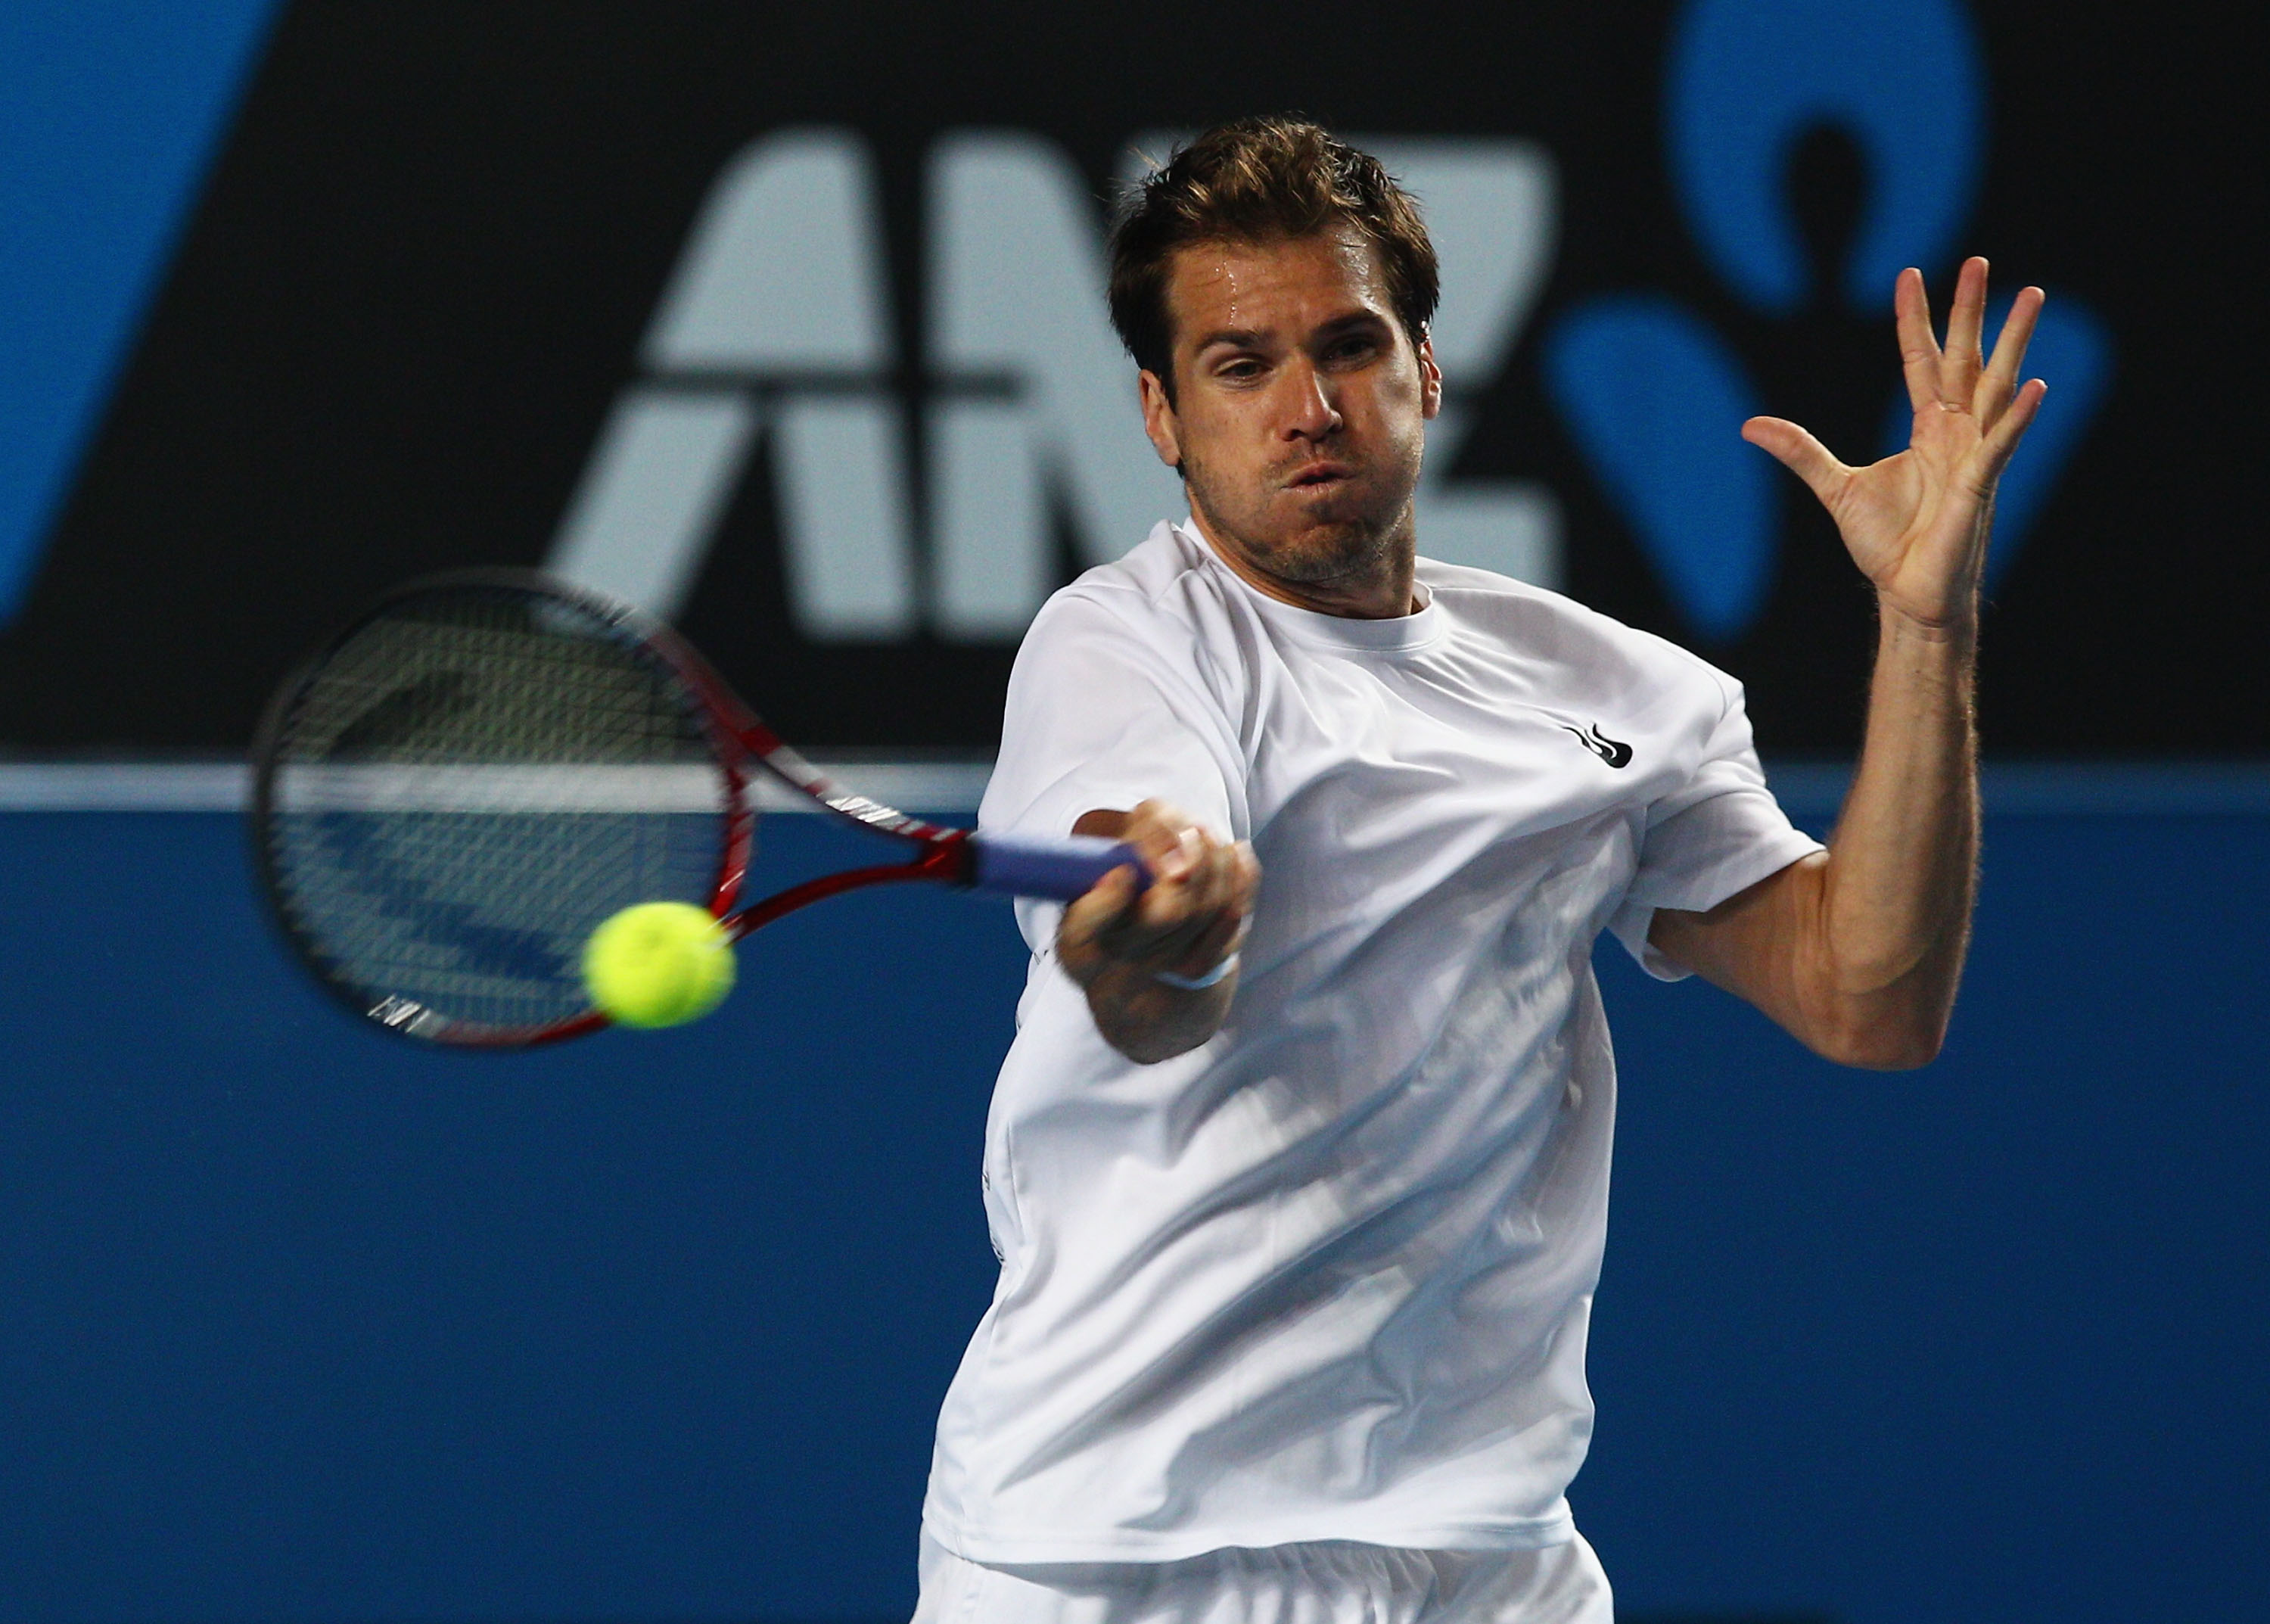 MELBOURNE, AUSTRALIA - JANUARY 23:  Tommy Haas of Germany plays a forehand in his third round doubles match against Jo-Wilfried Tsonga of France during day six of the 2010 Australian Open at Melbourne Park on January 23, 2010 in Melbourne, Australia.  (Ph